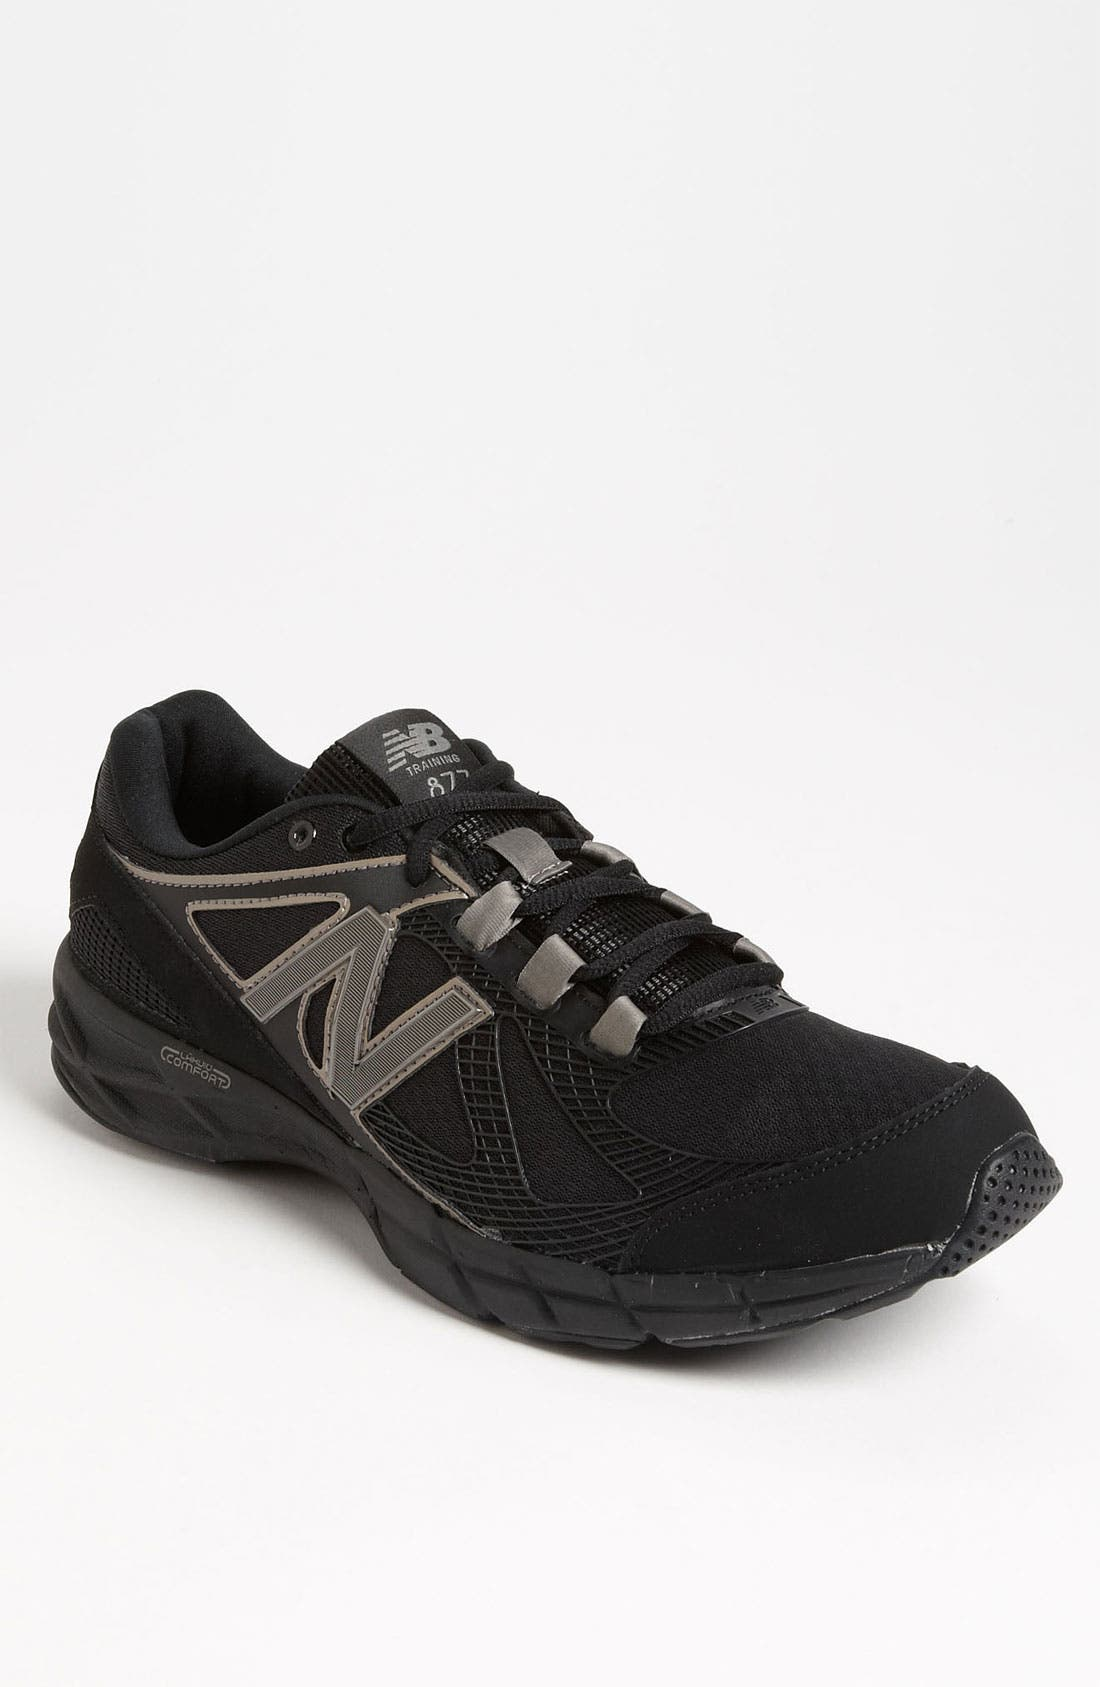 Alternate Image 1 Selected - New Balance '877' Training Shoe (Men) (Online Only)